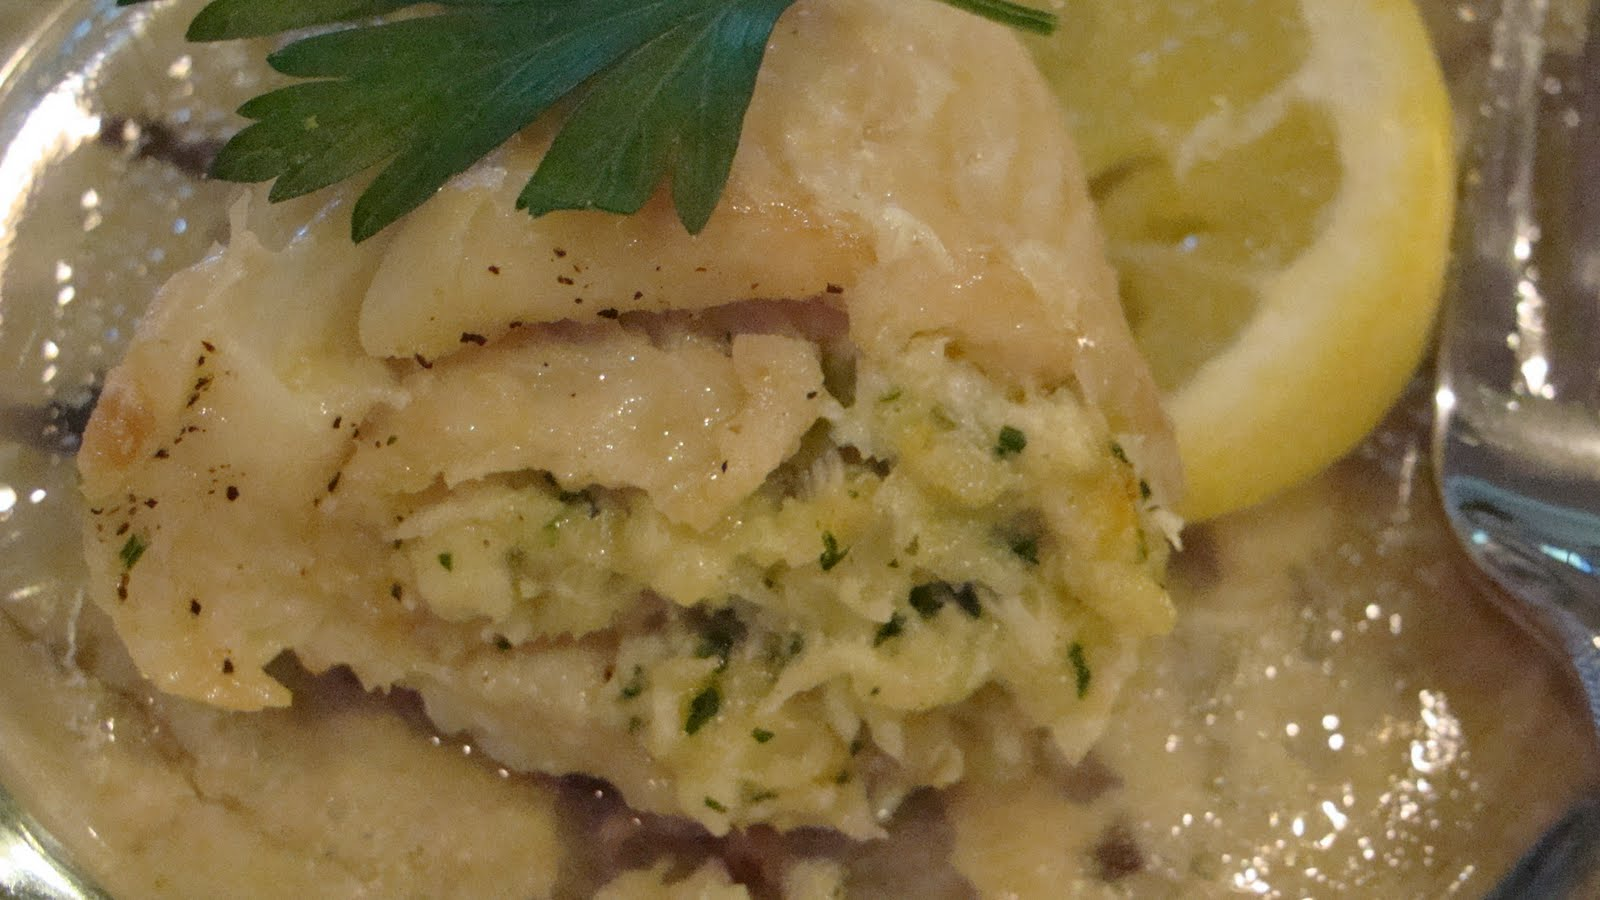 Crab stuffed fish fillet recipe panlasang pinoy recipes for Stuffed fish with crab meat